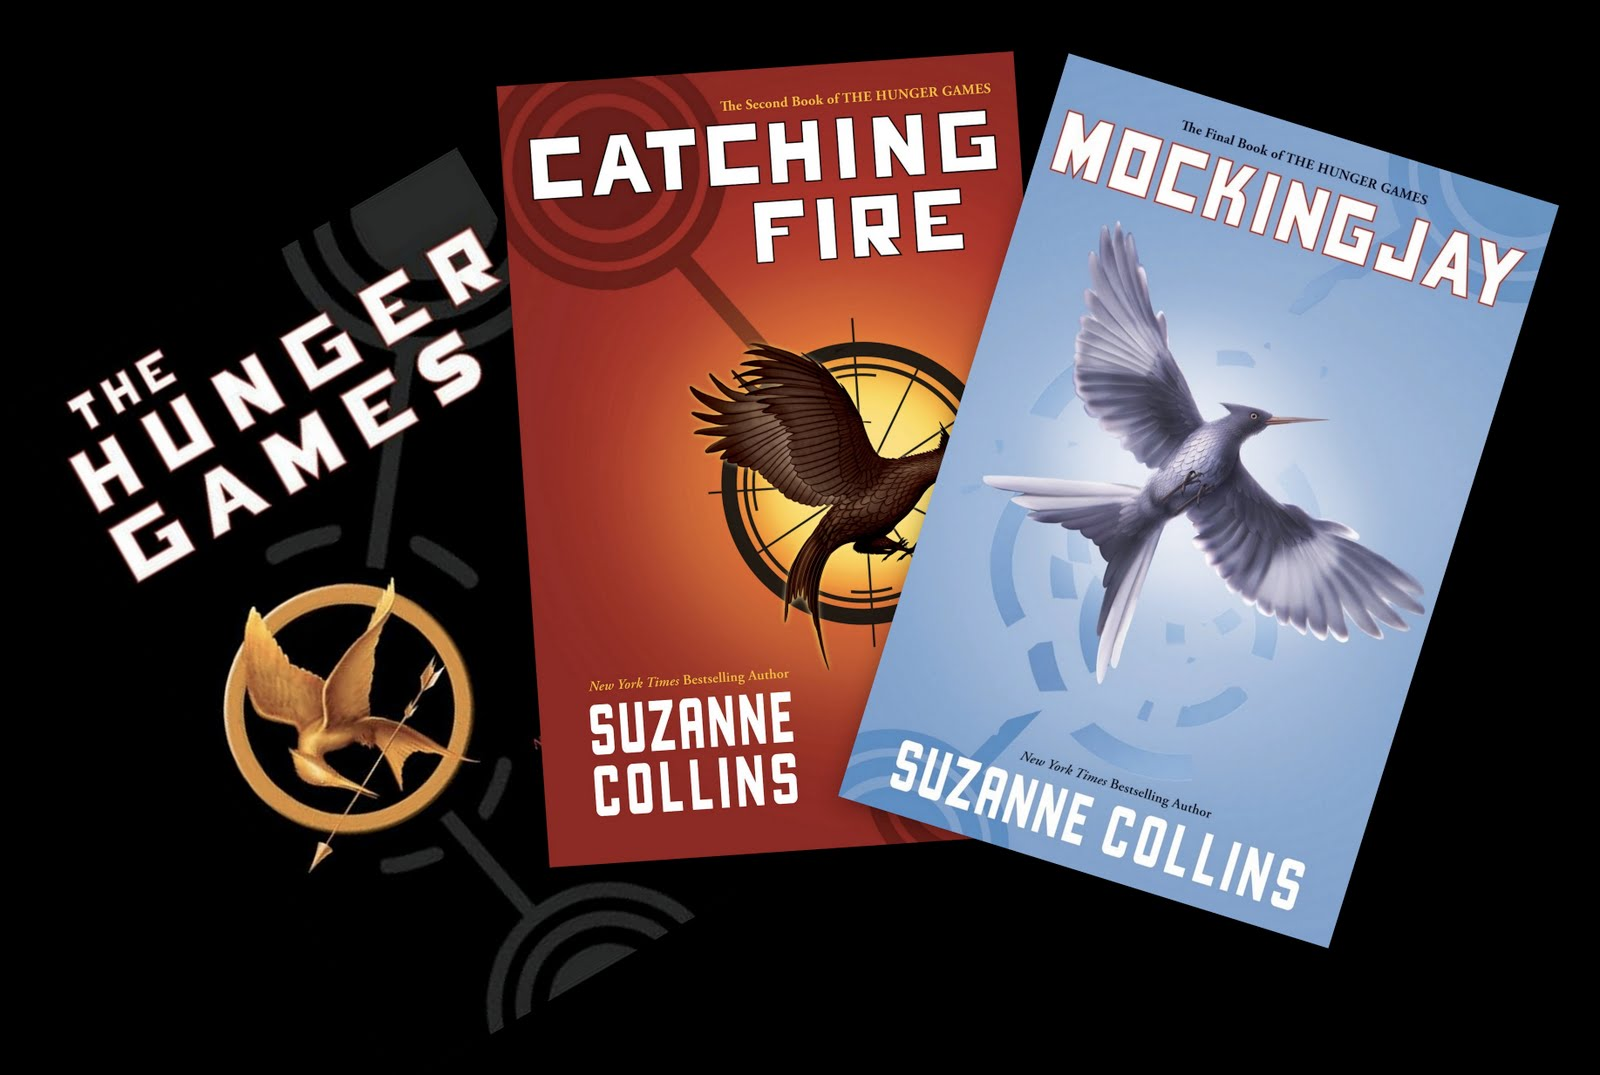 Dystopian novel #1: The Hunger Games trilogy by Suzanne Collins book cover.